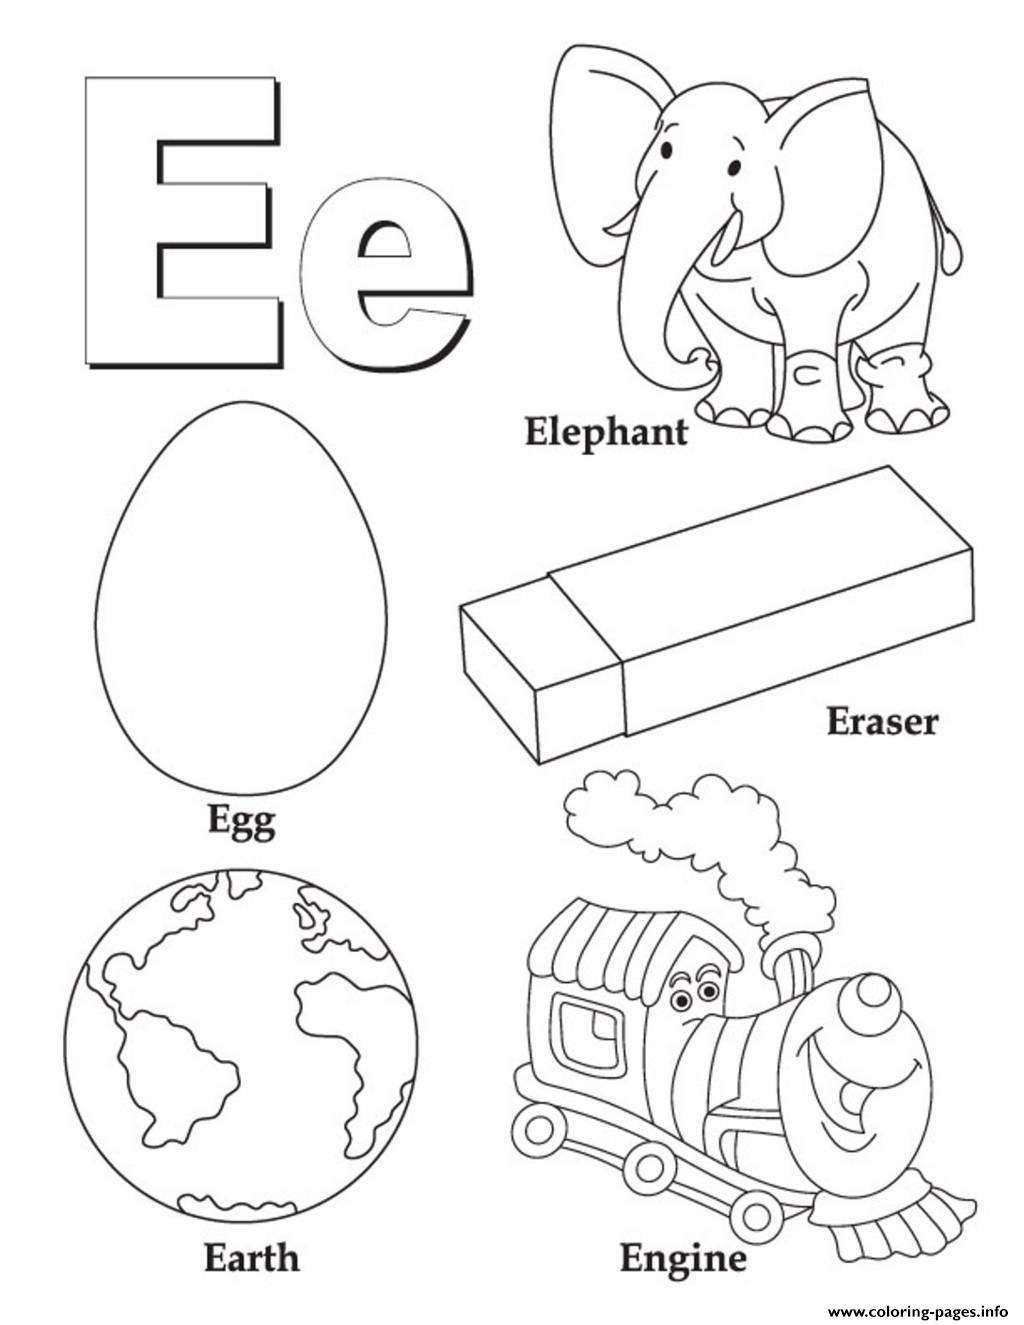 coloring pages alphabet a - alphabet s free words for ea3a4 coloring pages printable